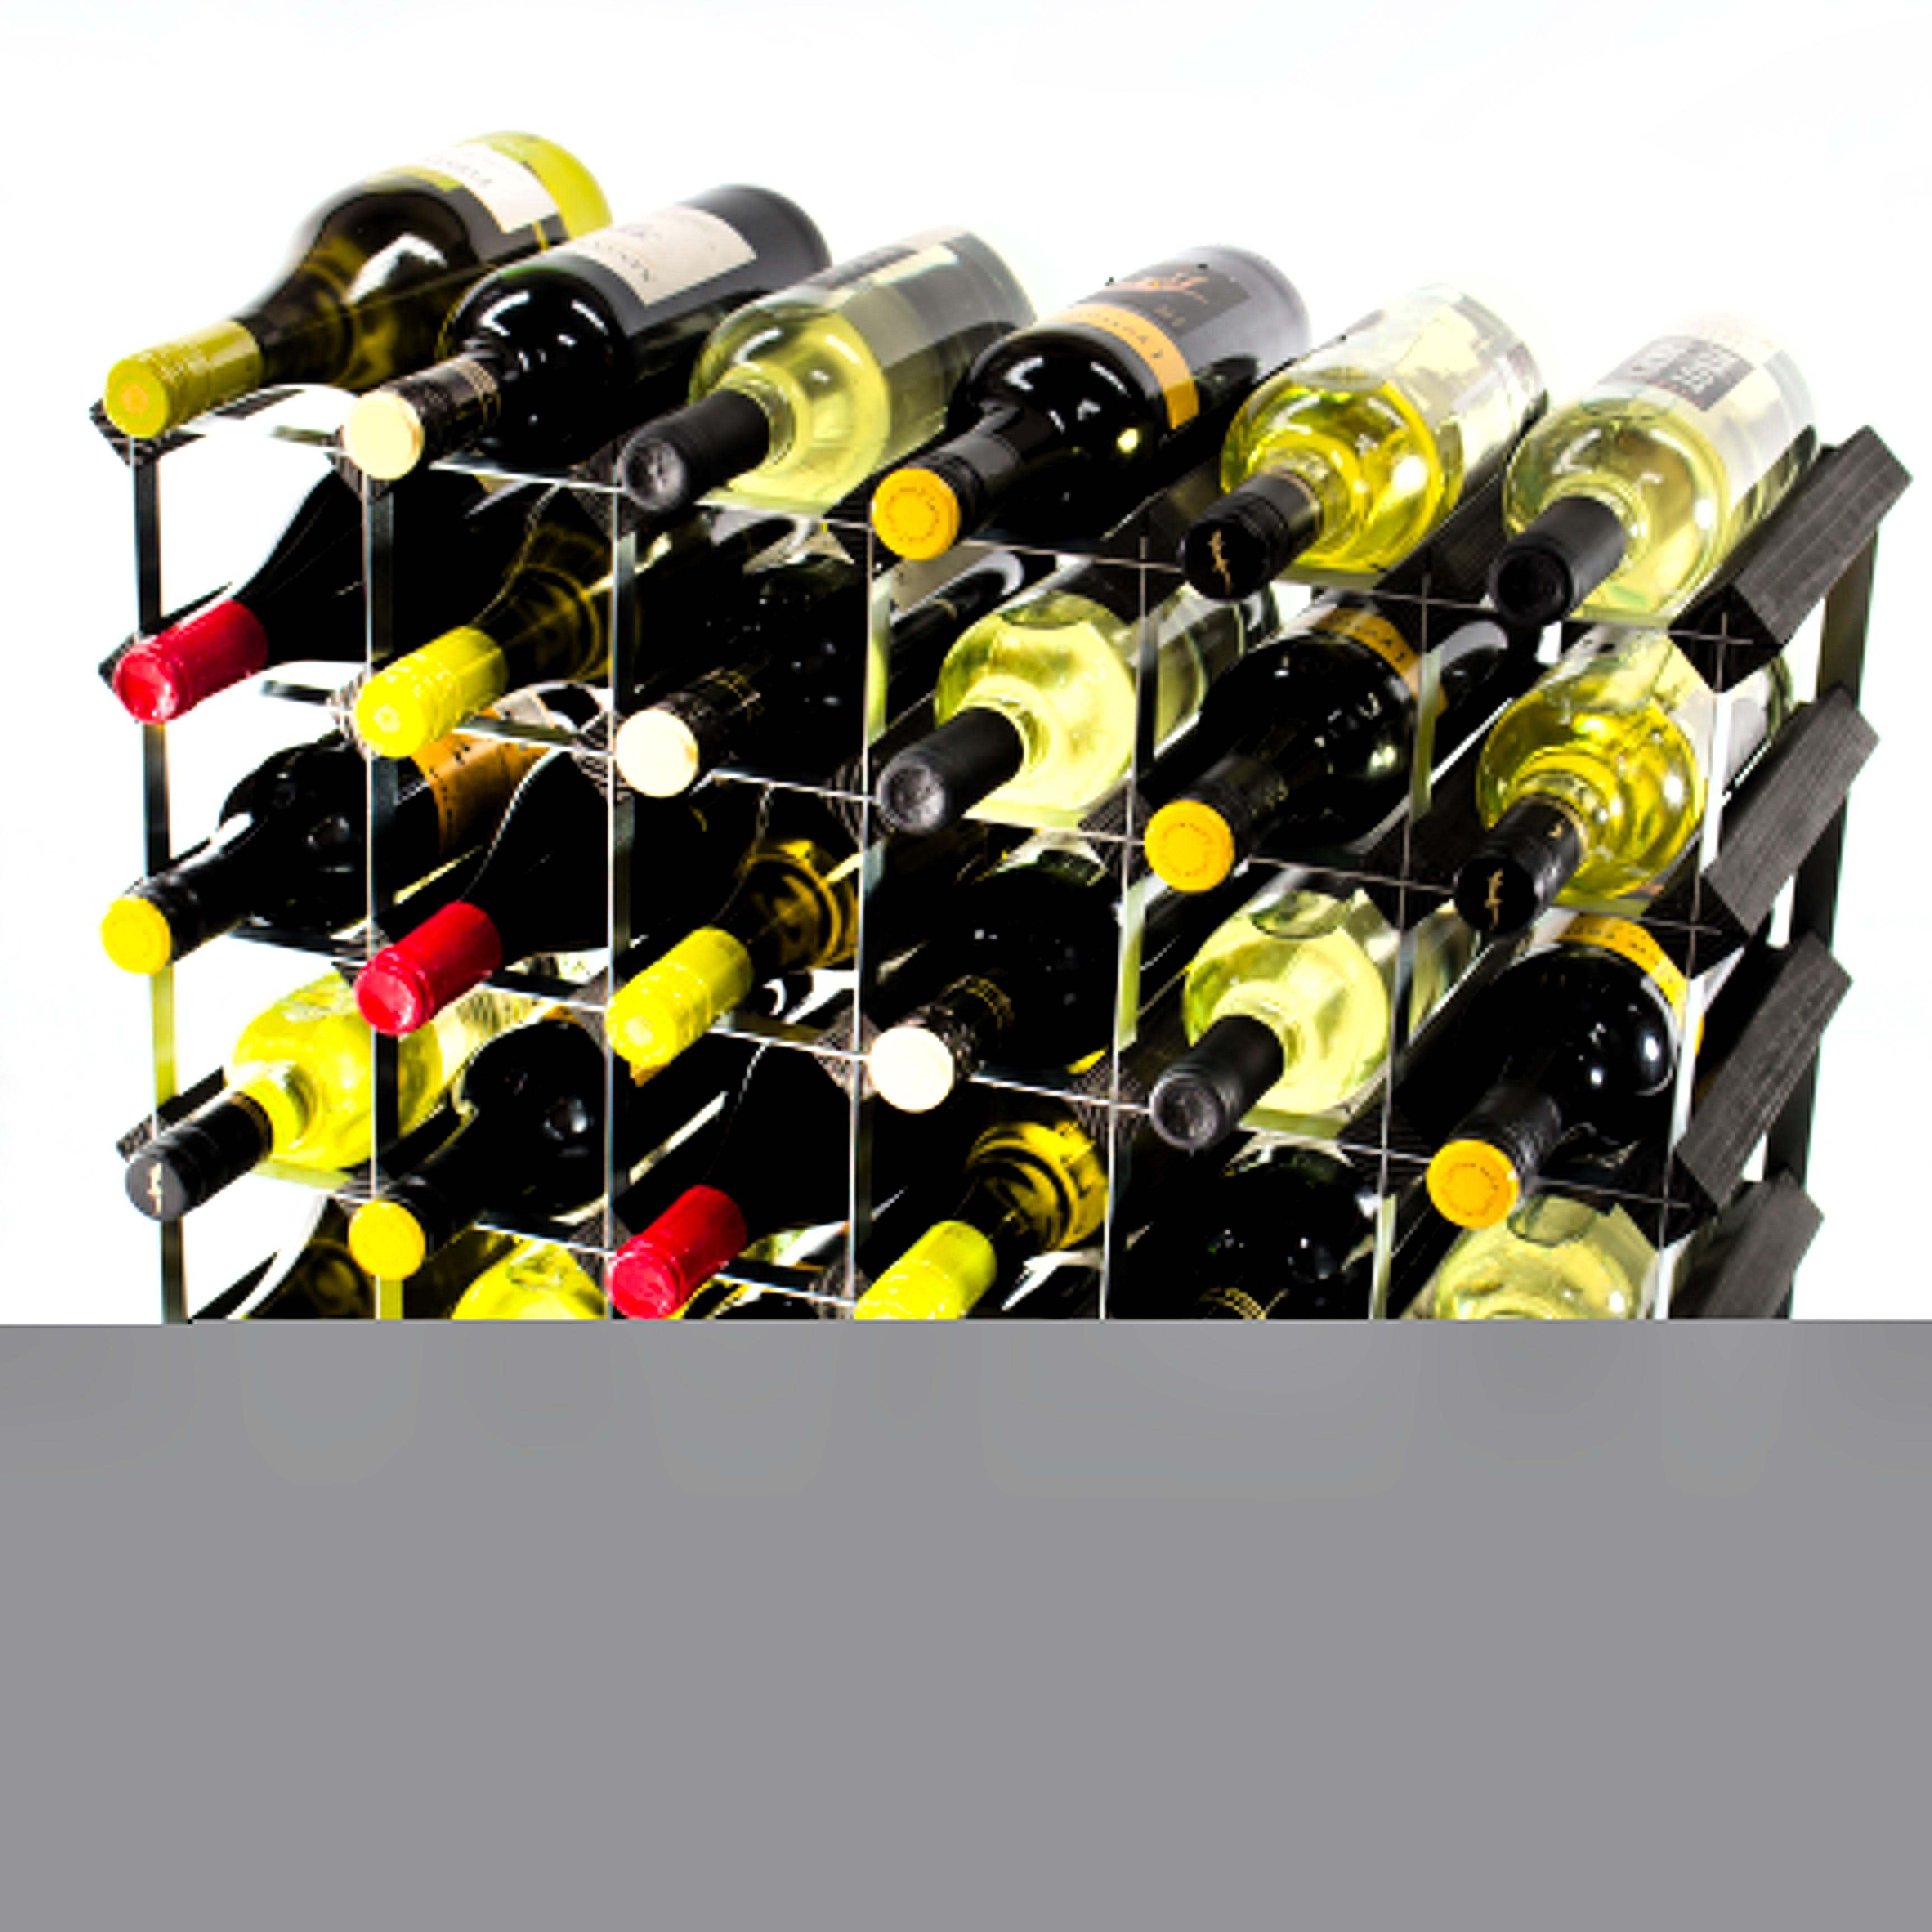 30 6x4 Bottle Wine Rack Ready Assembled Cranville